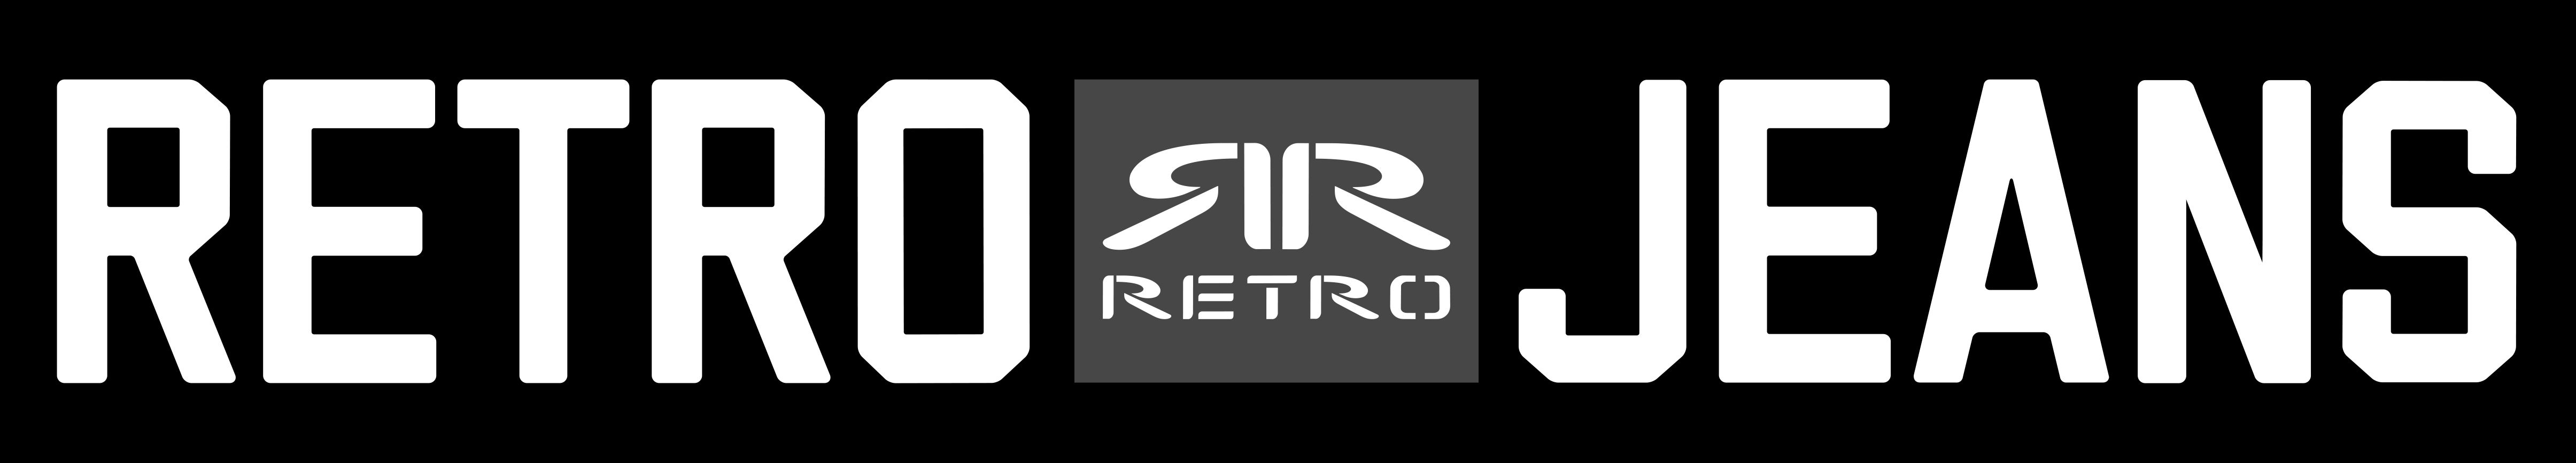 OFFICIAL_RETRO_JEANS_LOGO_2017_.jpg